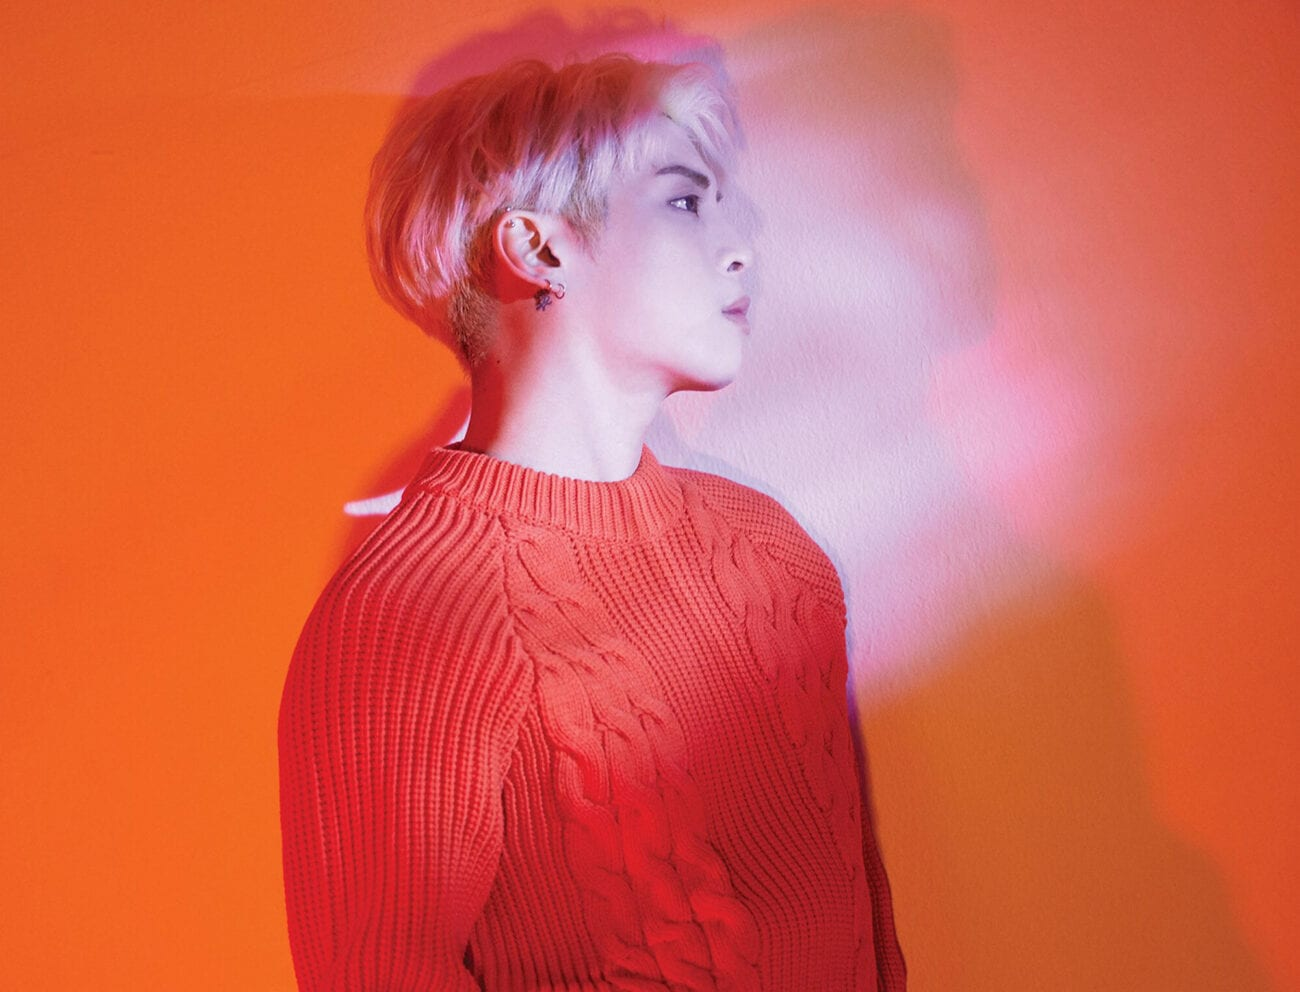 """Back in 2017, the lead vocalist of the """"Princes of K-pop"""" band SHINee, Jonghyun, died by suicide. Learn more about the musician here."""